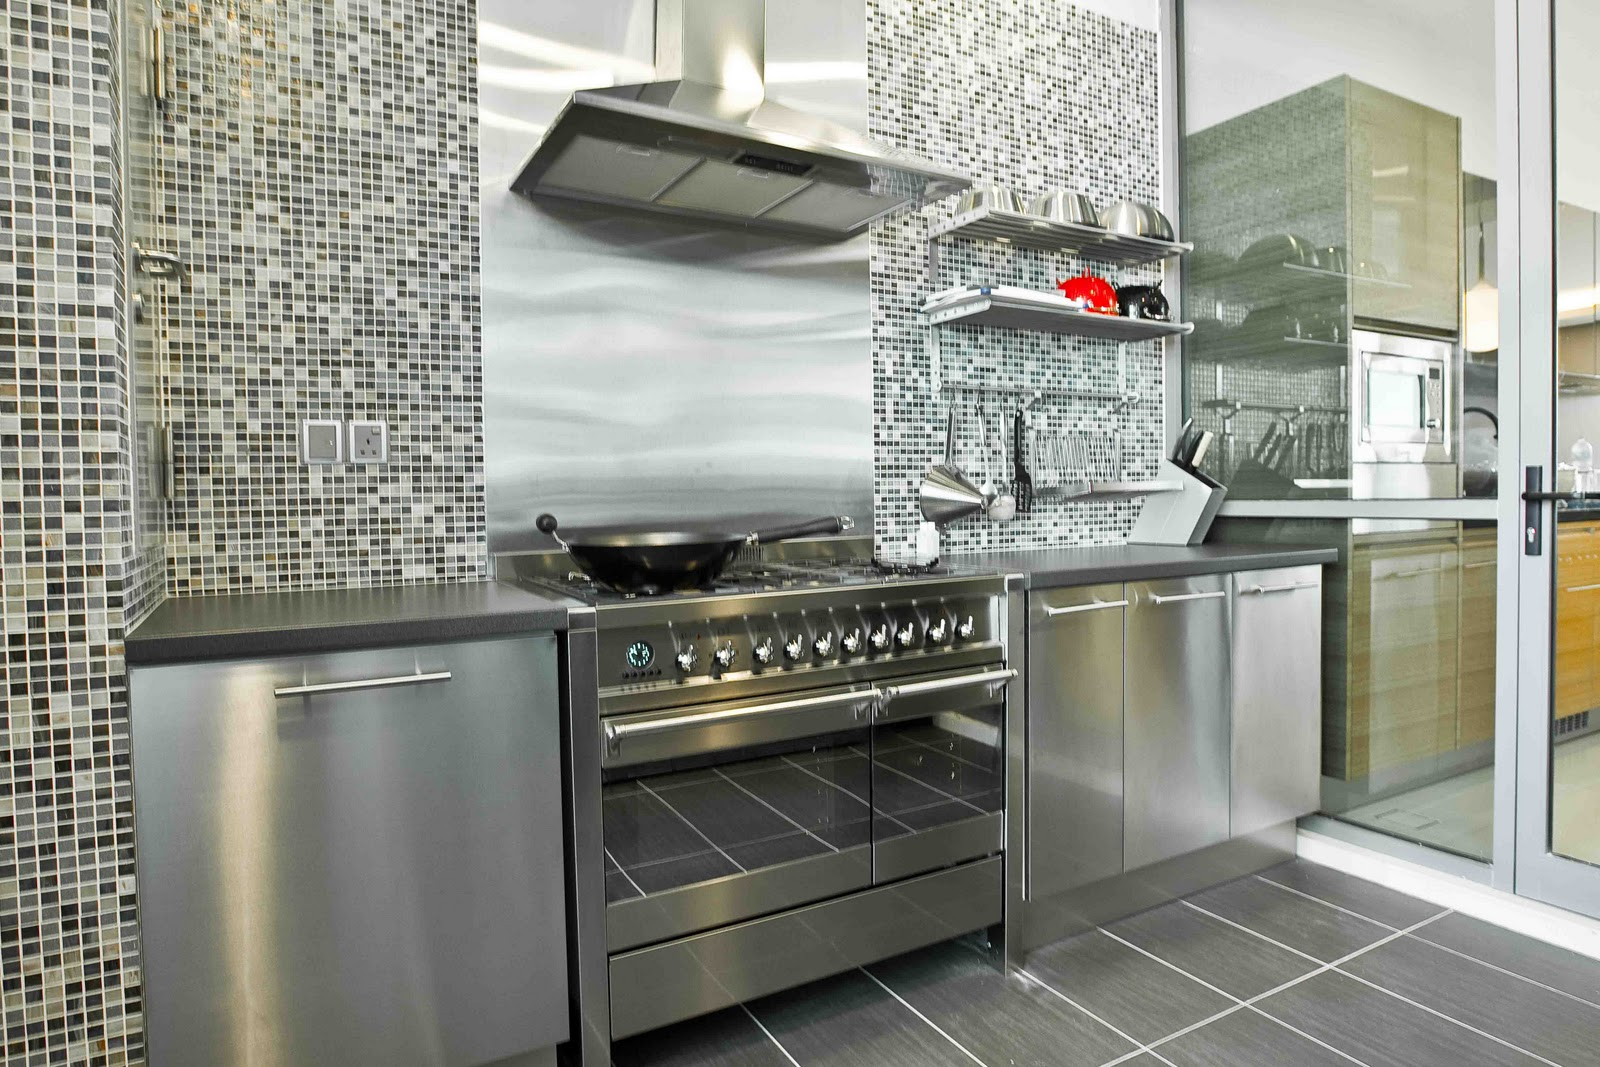 stainless steel kitchen shelves stainless steel kitchen cabinets Remarkable IKEA Kitchen Shelves Stainless Steel kB jpeg